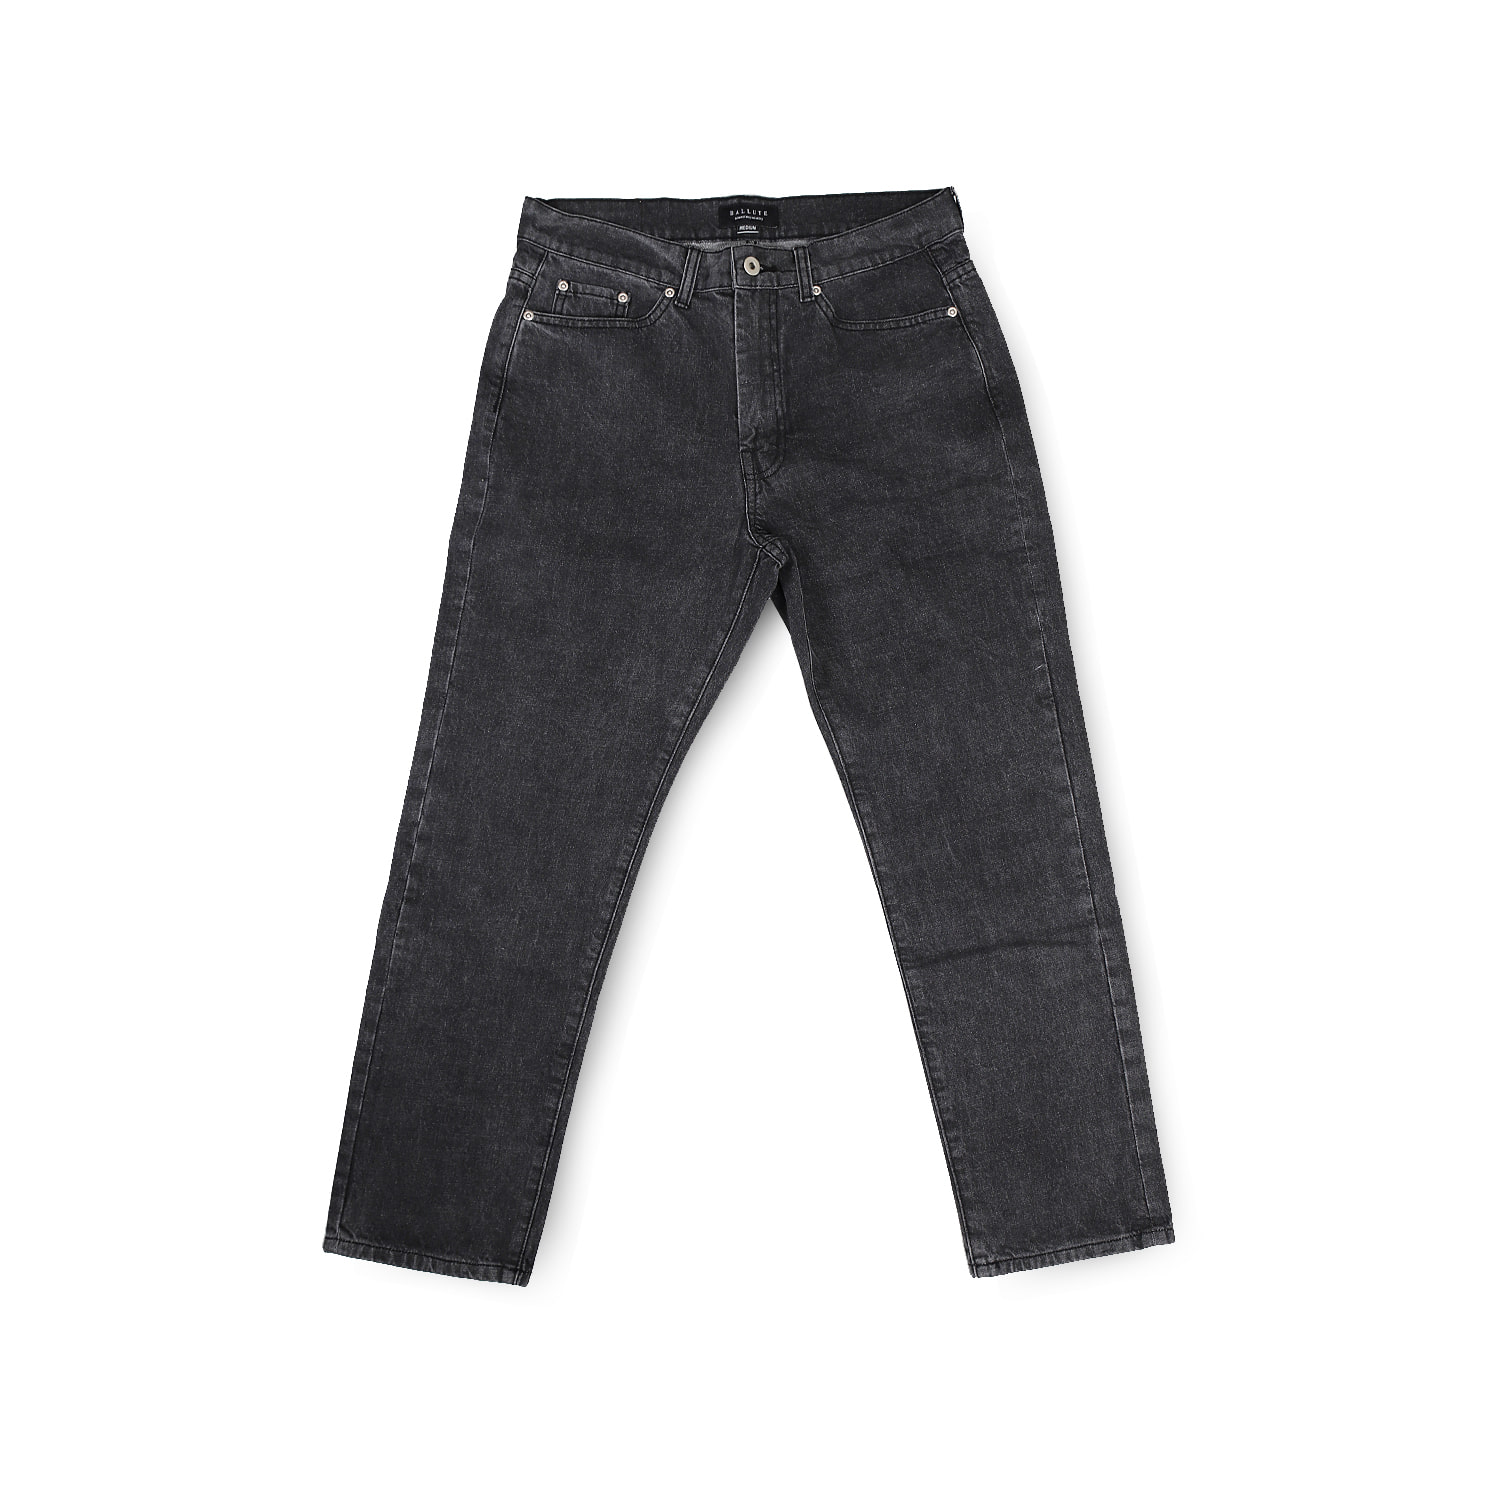 SIGNATURE DENIM PANTS (BLACK)